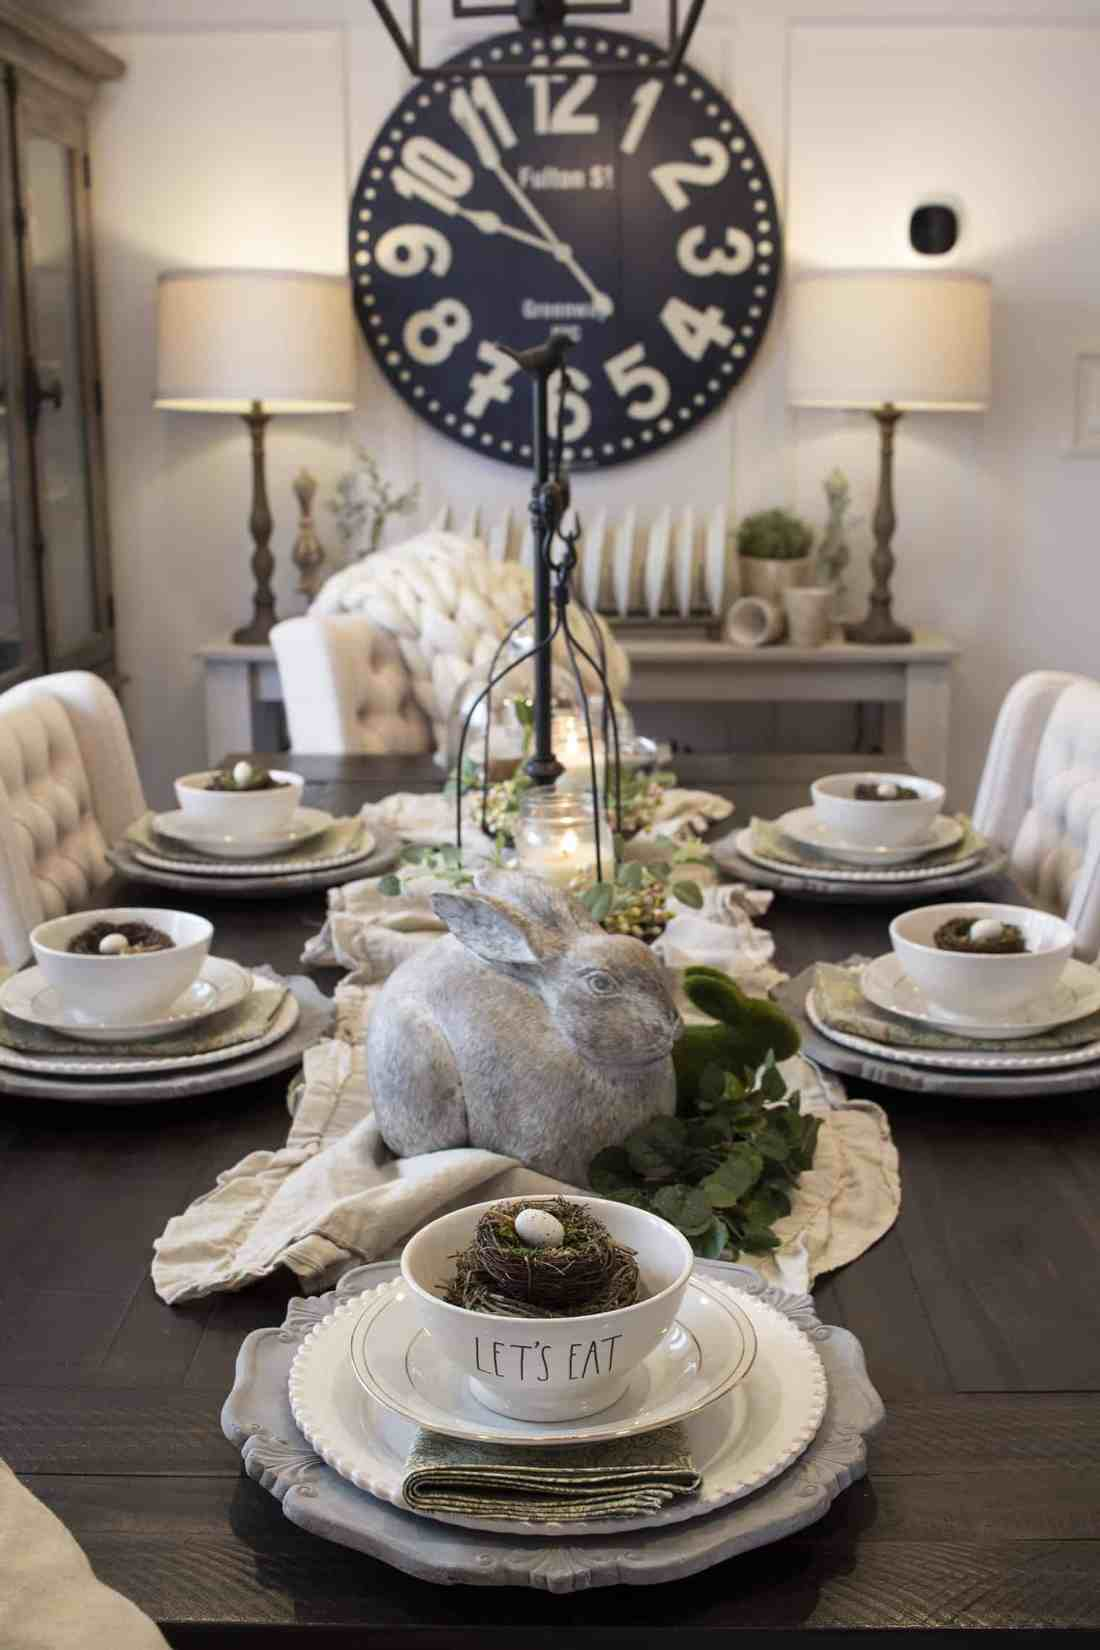 Easter table setting with concrete bunnies